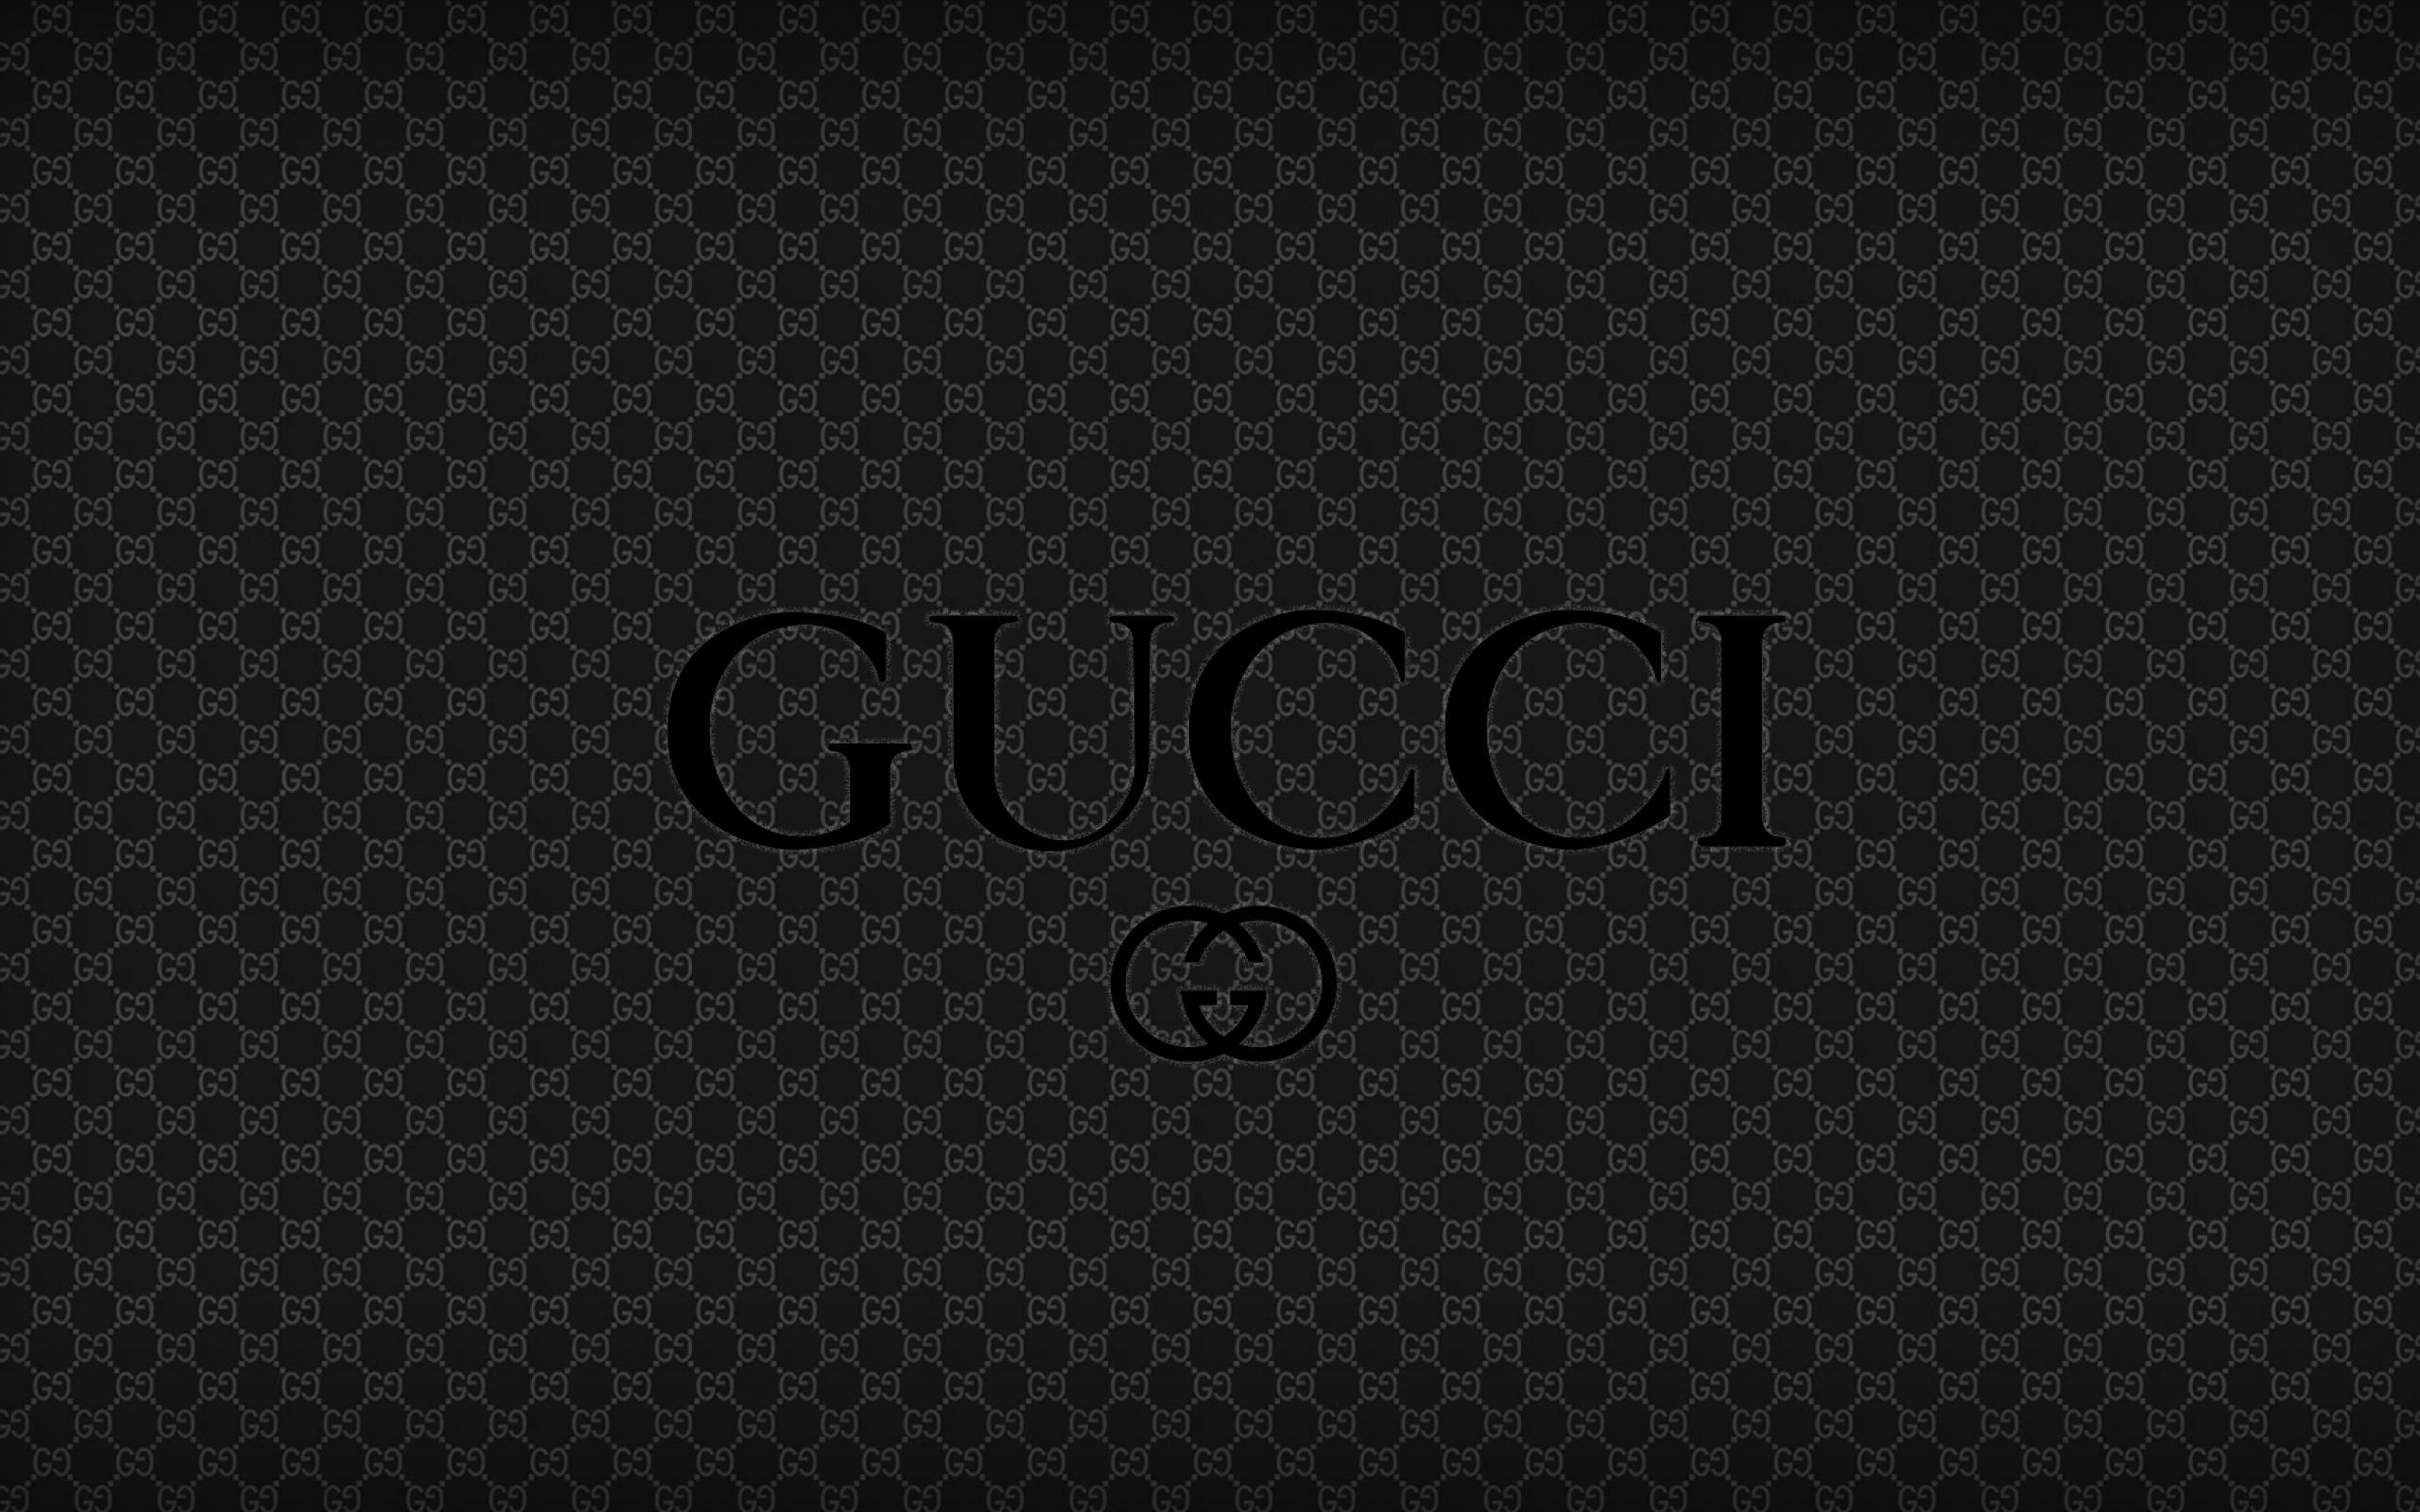 Gucci Logo Wallpaper Hd Iphone wwwpixsharkcom   Images 2560x1600